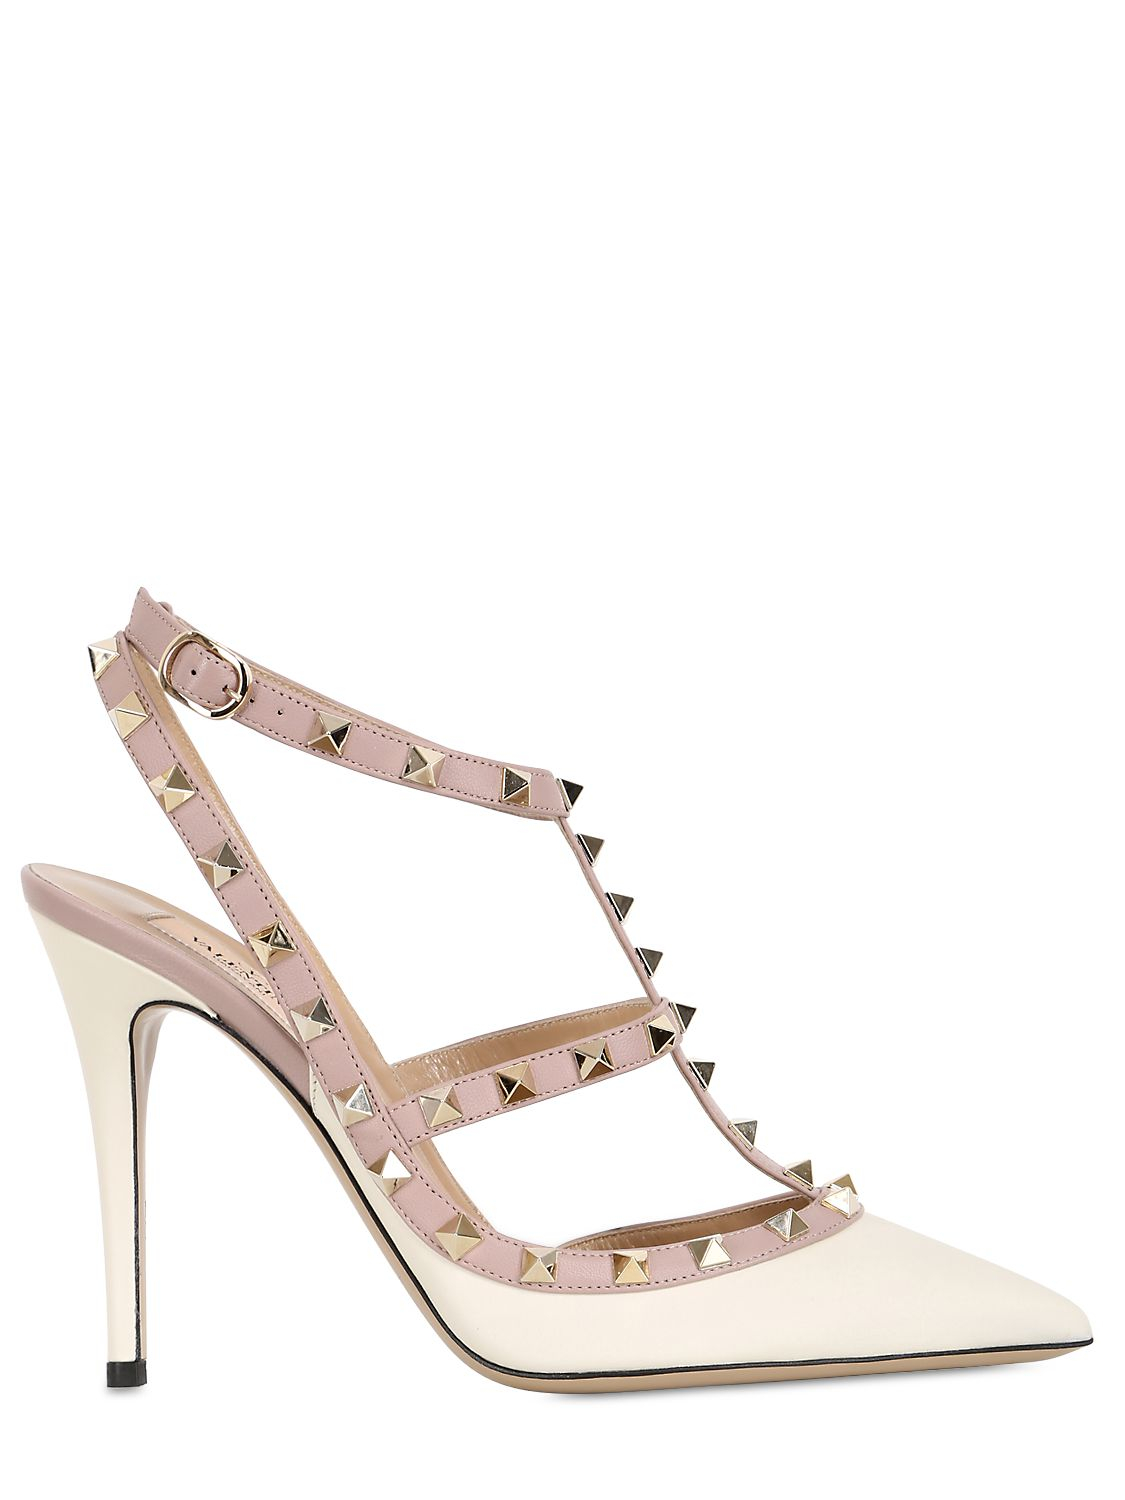 valentino 100mm rockstud leather pumps in beige ivory lyst. Black Bedroom Furniture Sets. Home Design Ideas